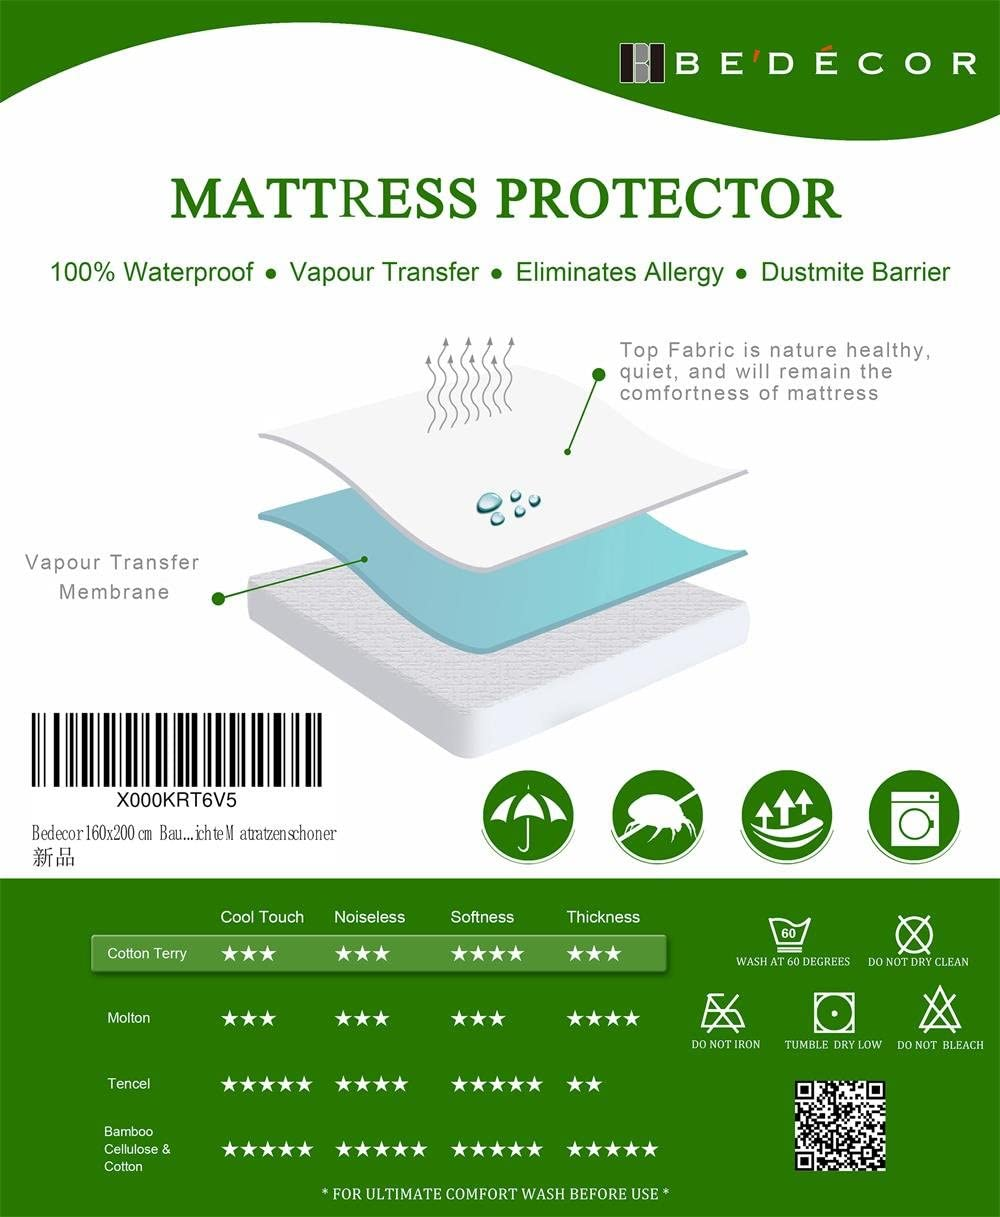 Small Cot Size 60x120cm Bedecor Breathable Waterproof Mattress Protector Mattress Cover with Corner Straps Terry Towelling